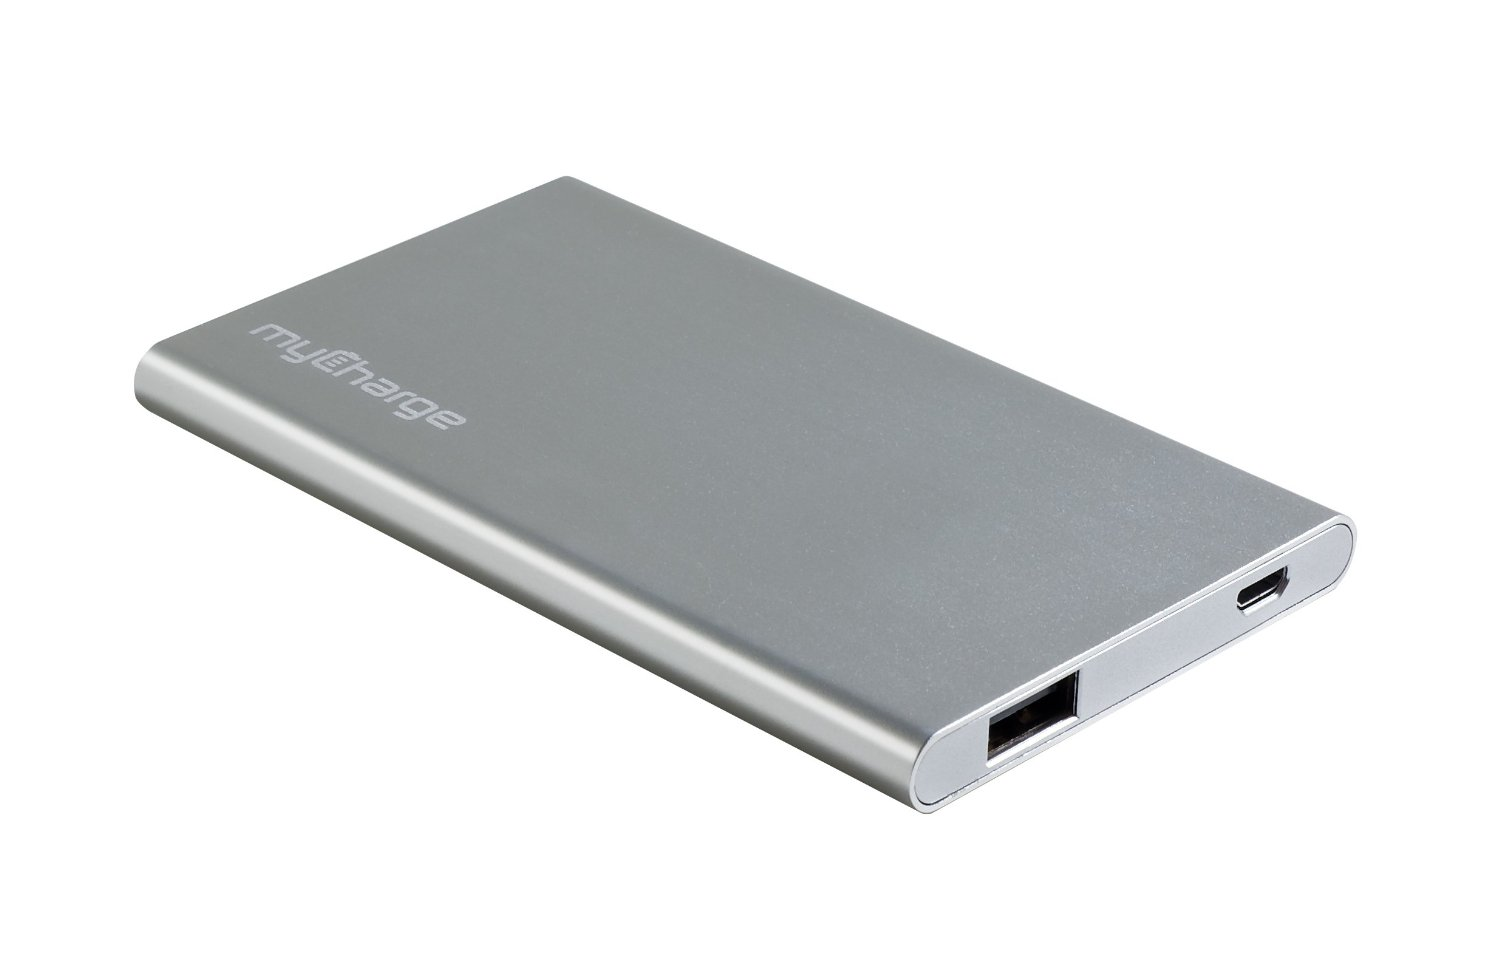 MyCharge Razor Plus 3000mAh power bank because I lost all my photos of it I'm using the Amazon stock